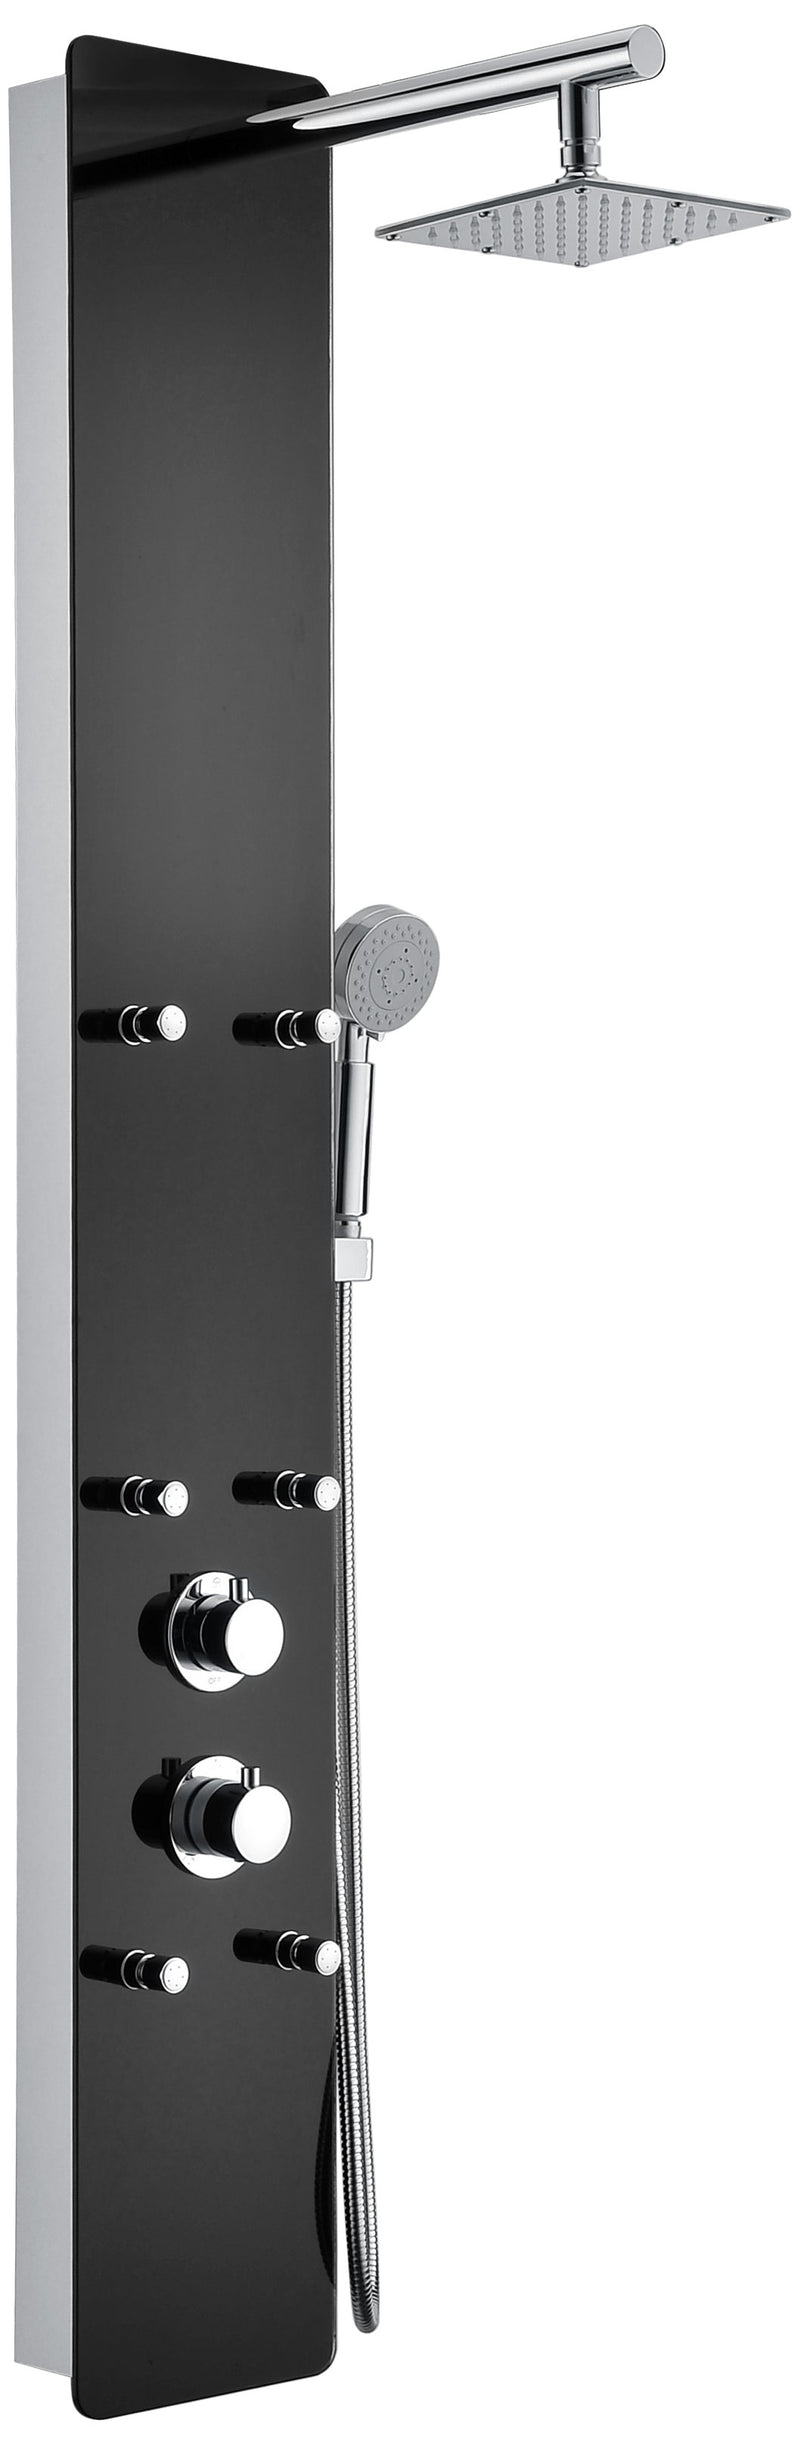 "Anzzi Melody 59"" 6-Jetted Shower Panel with Heavy Rain Shower and Spray Wand in Black Deco-Glass"